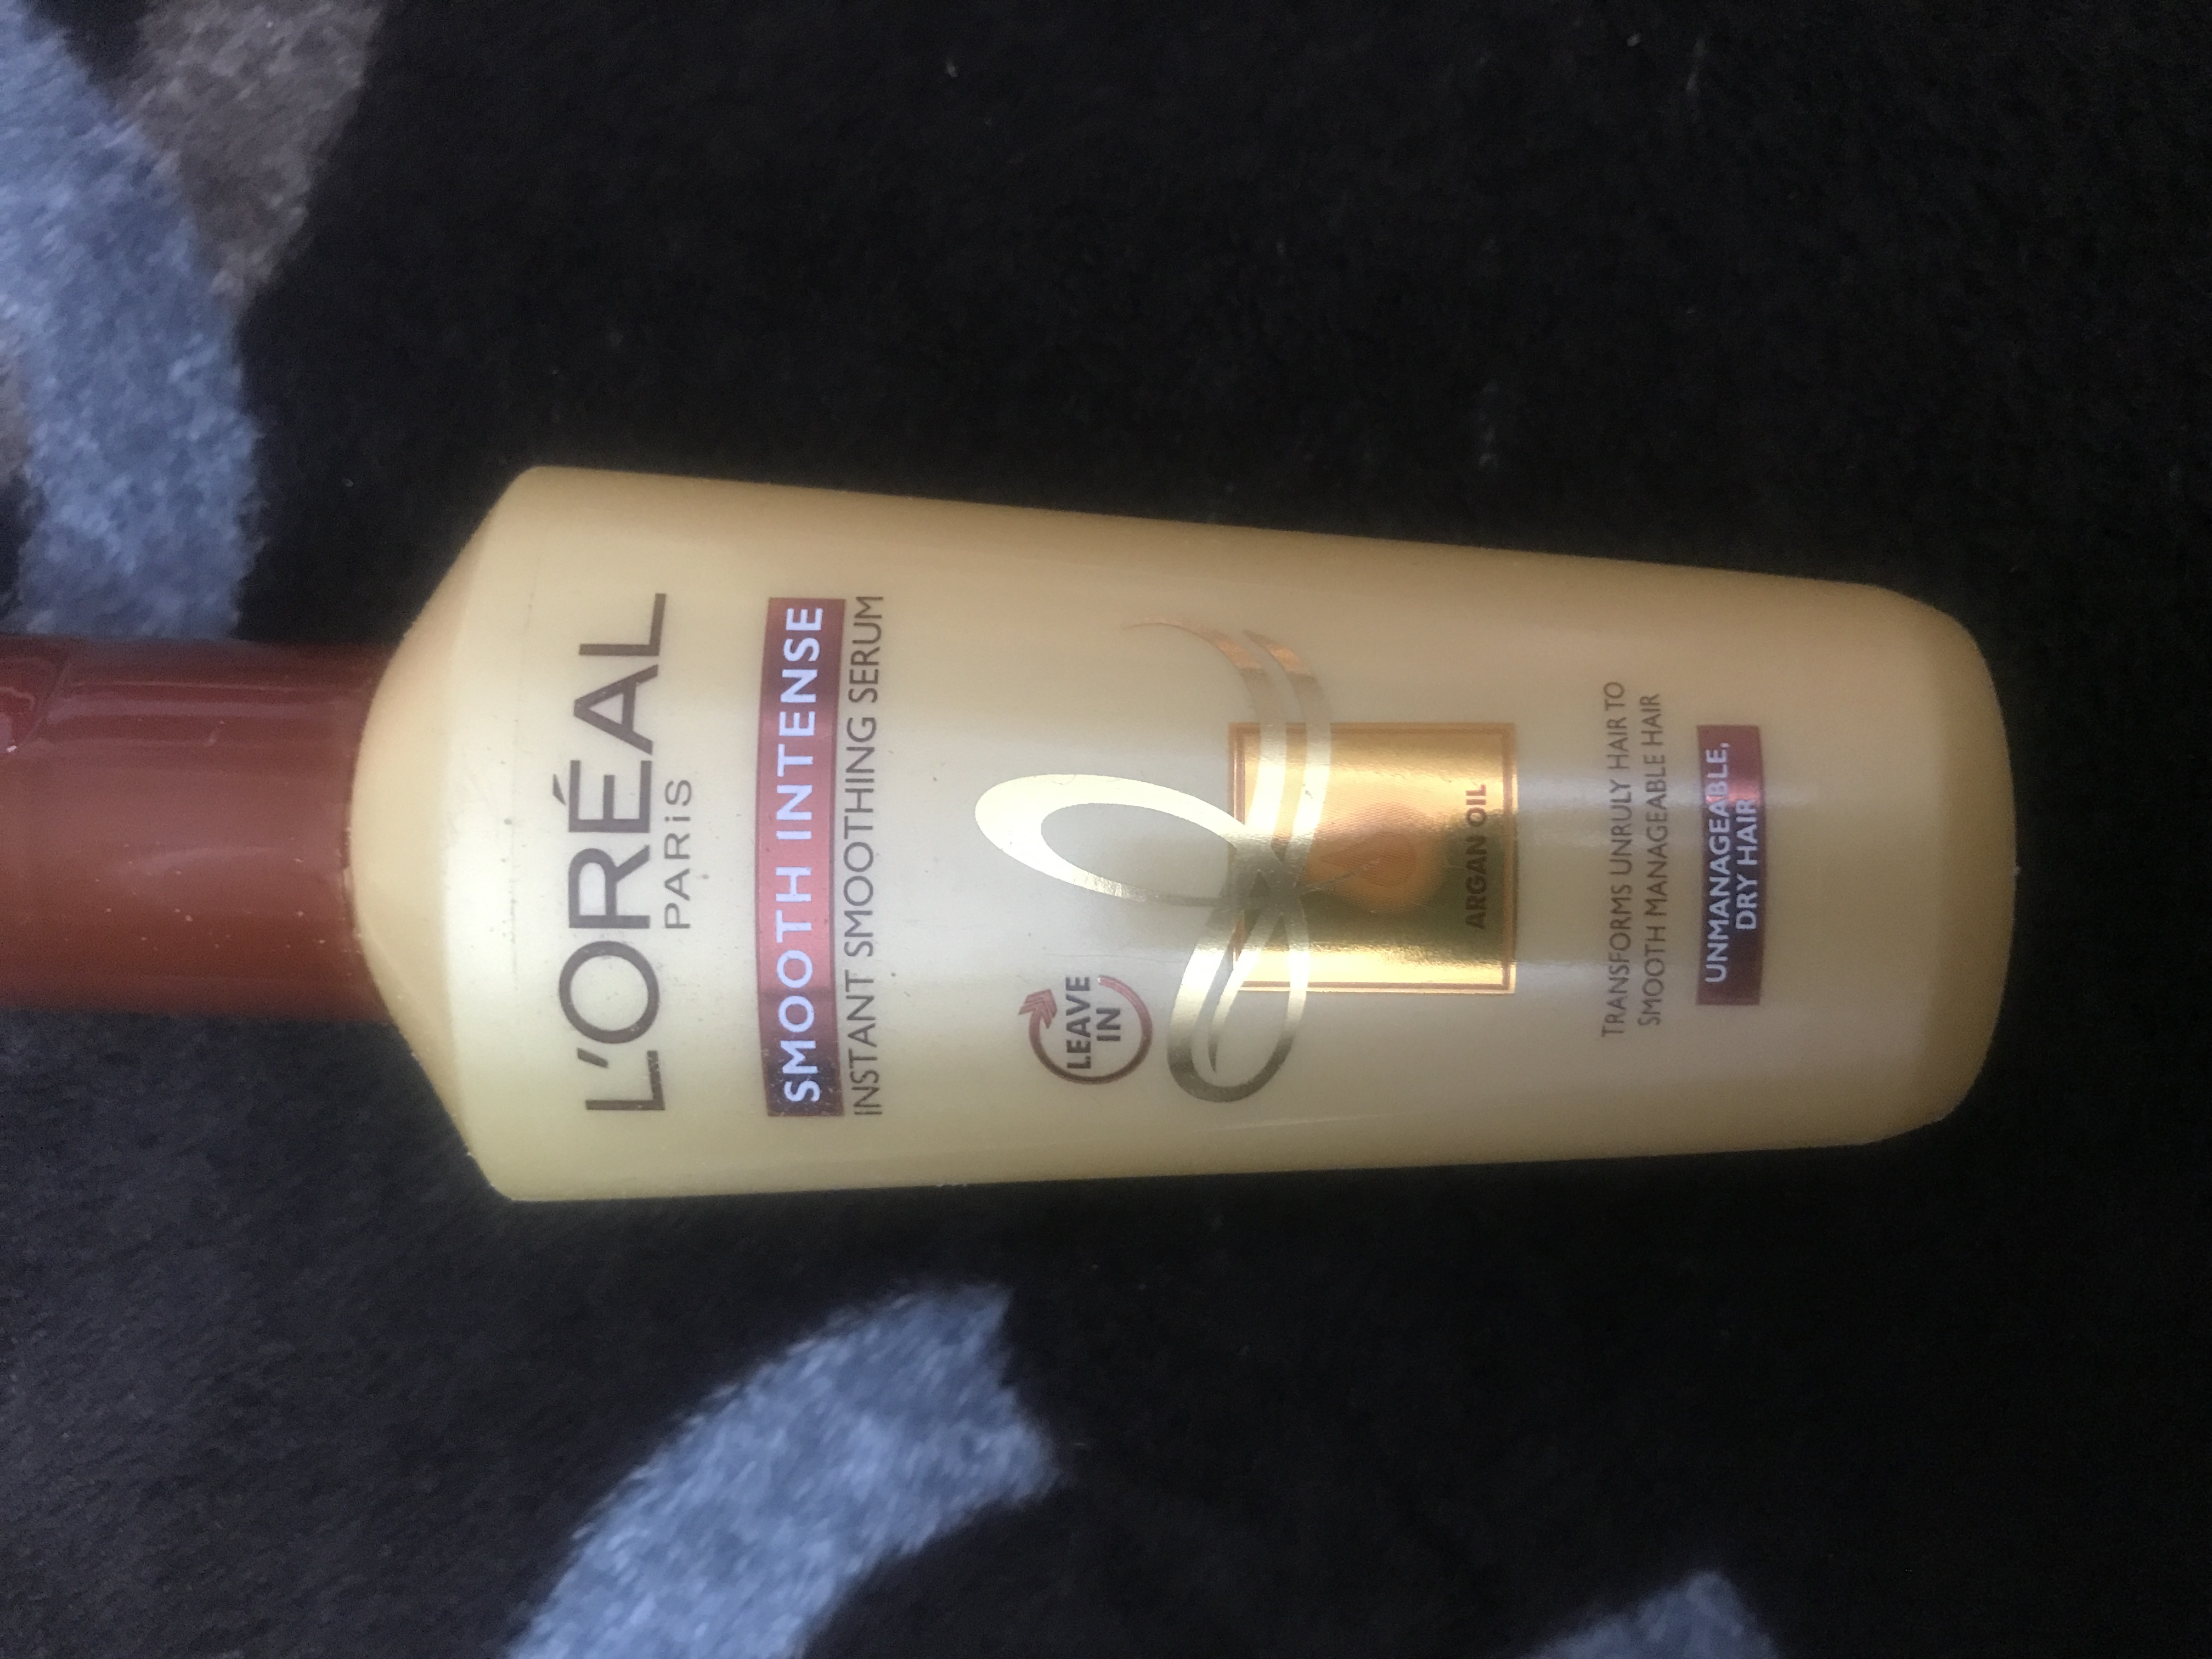 L'Oreal Paris Smooth Intense Instant Smoothing Serum -Smoothening serum-By poonam_kakkar